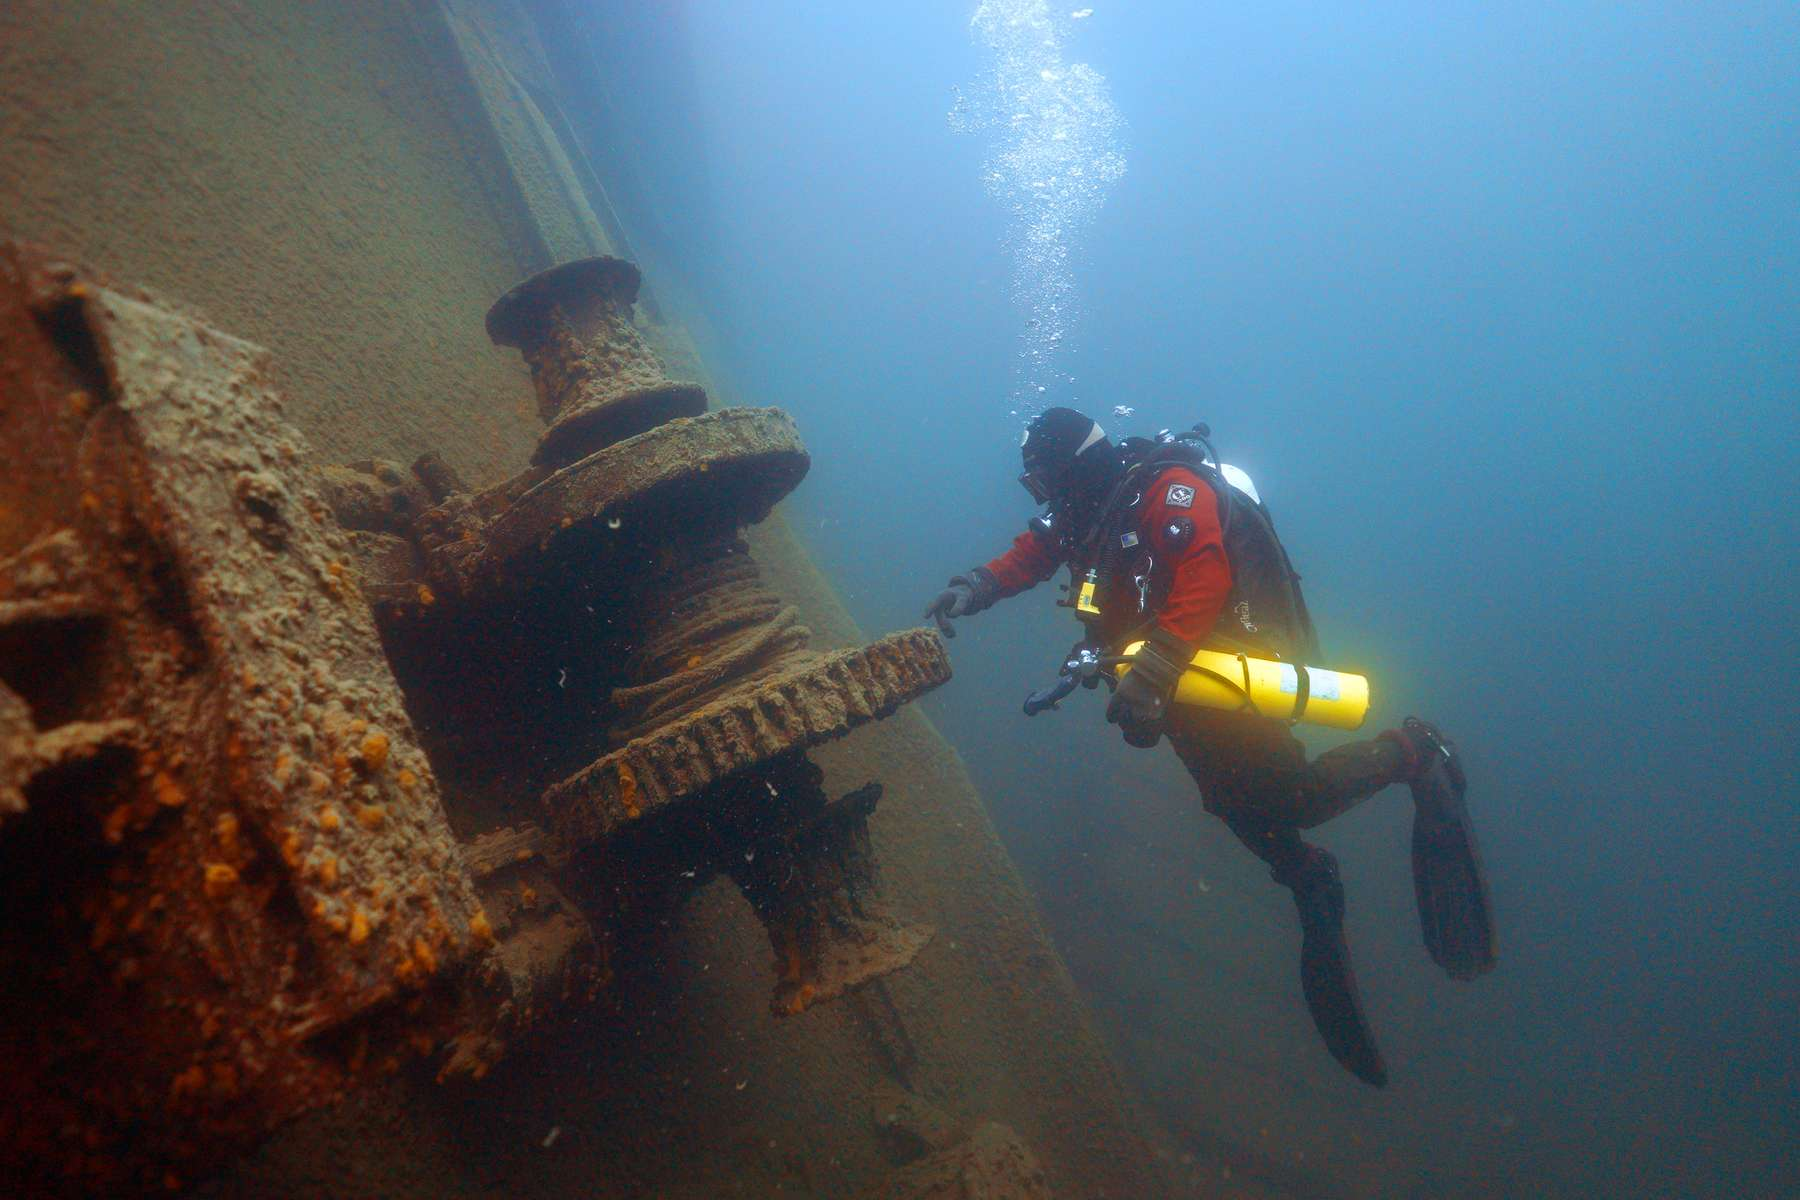 Jim Christenson, a diver with the Great Lakes Shipwreck Preservation Society, explored the stern winch on the Madeira, a schooner barge that sank in Lake Superior on November 28, 1905, at about 65 feet below the surface during a project dive near Split Rock Lighthouse south of Two Harbors, Minn.